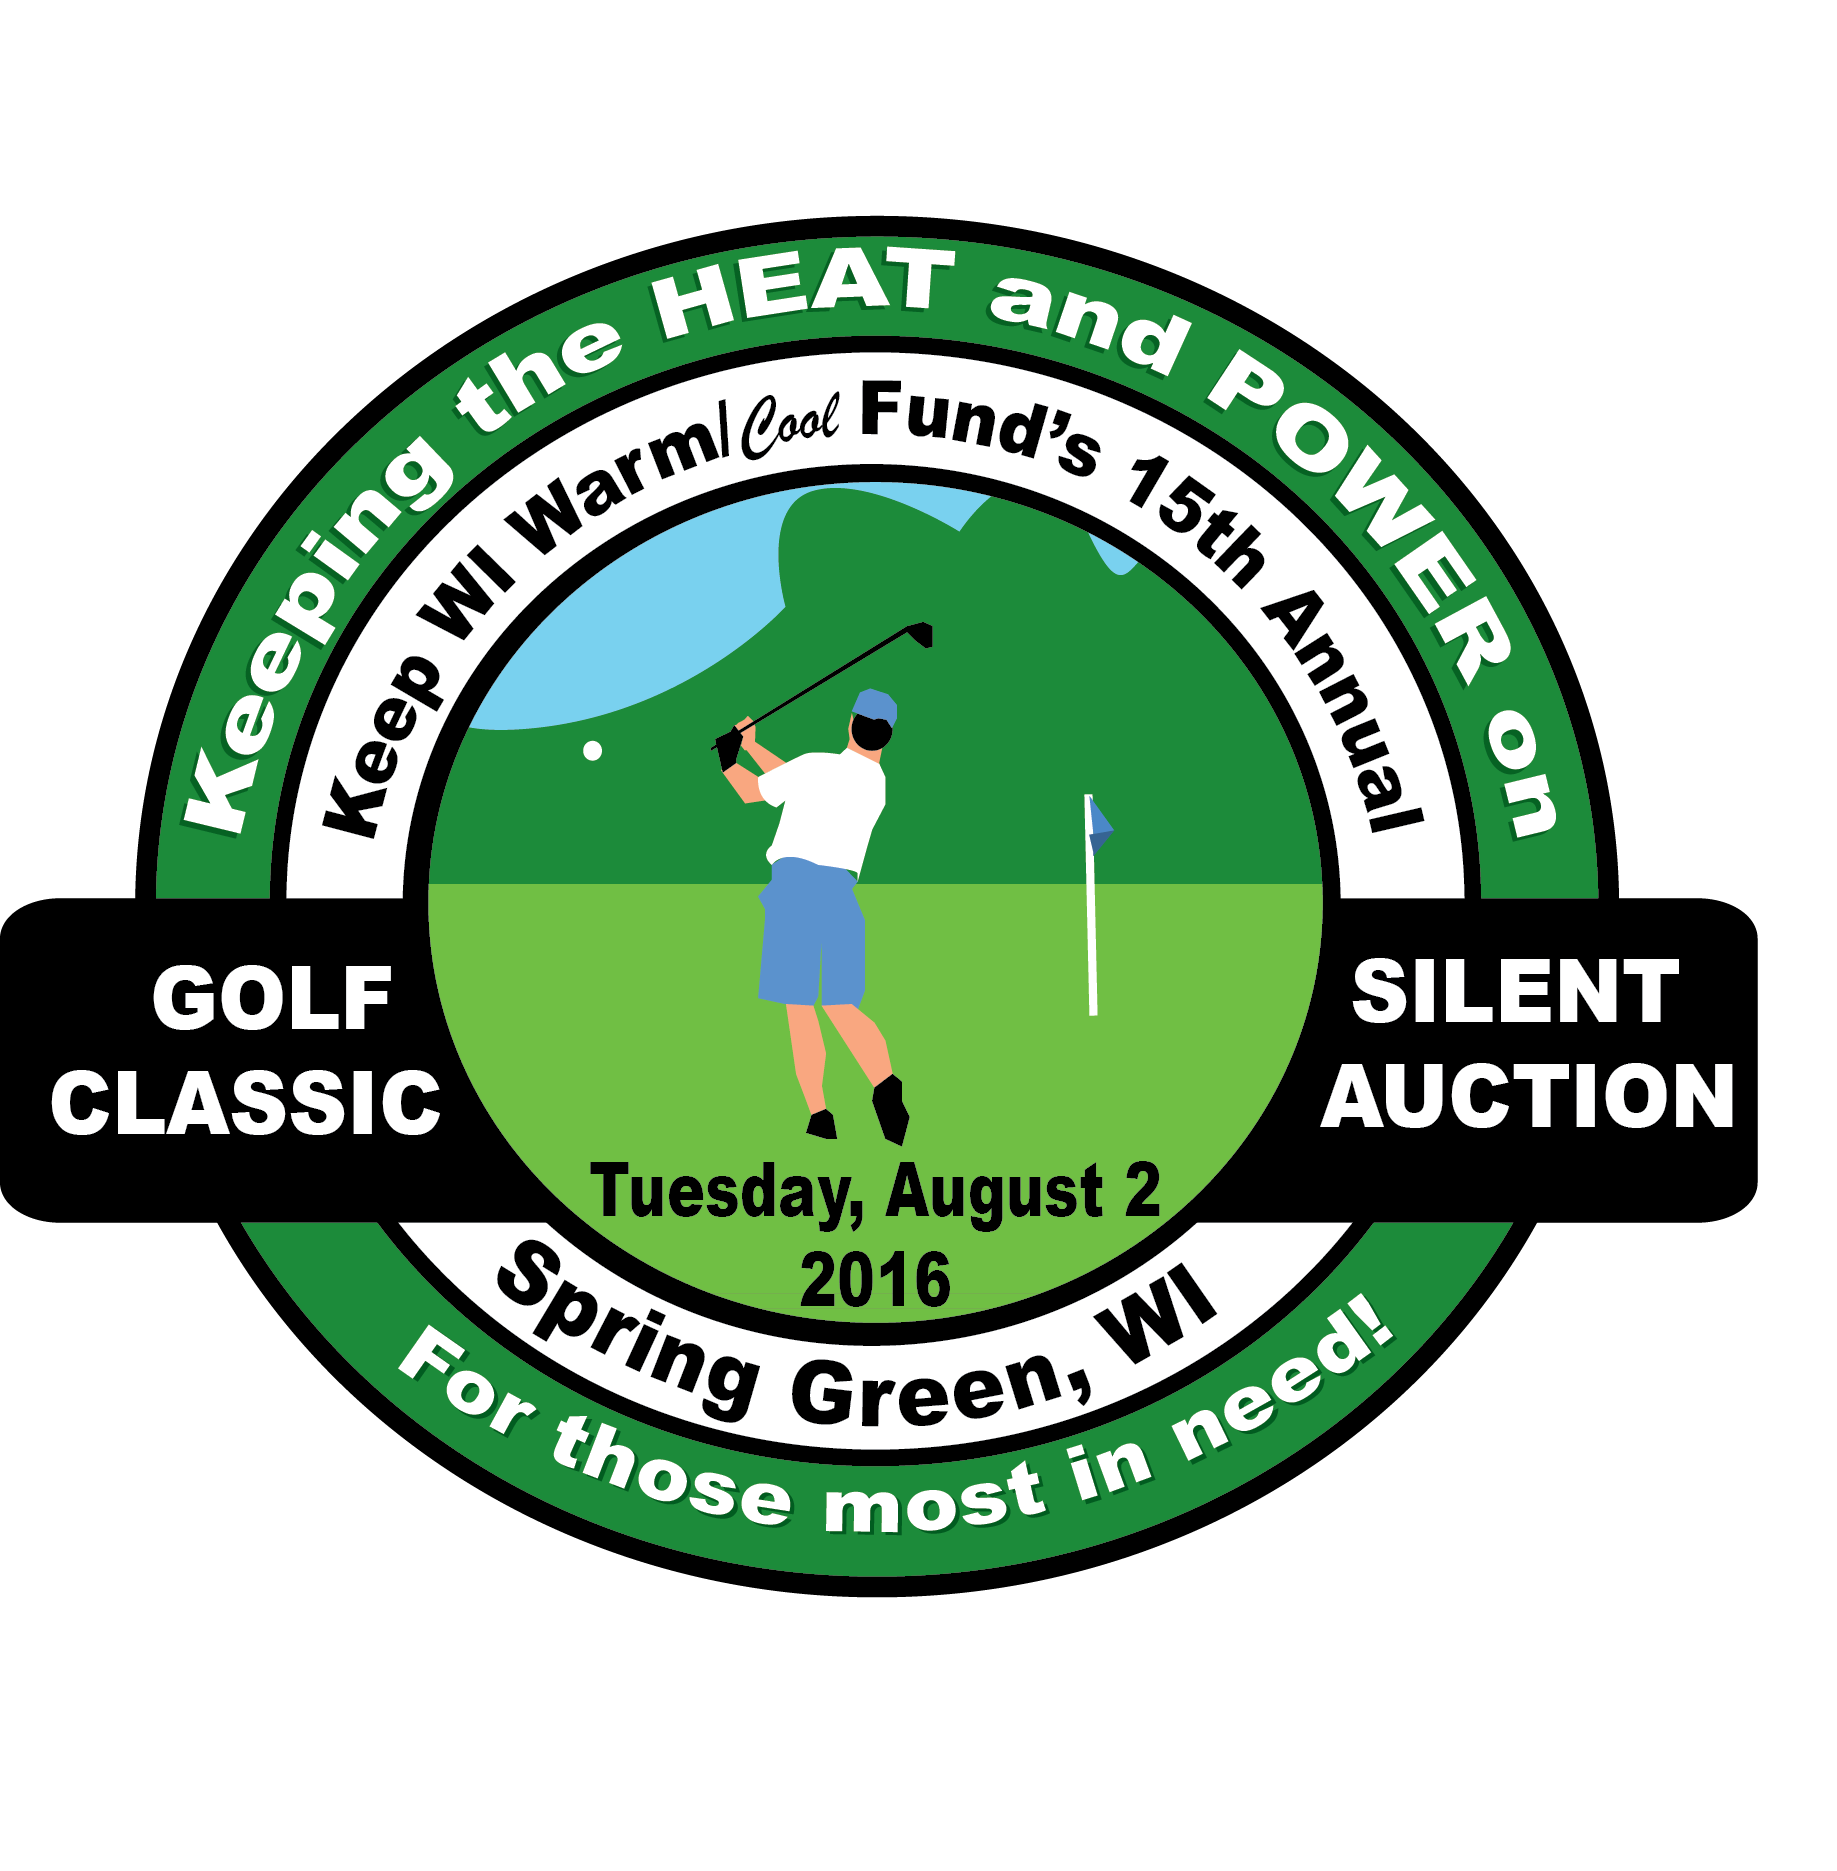 http://heat4heroes.org/sites/heat4heroes.org/assets/images/default/golflogo_2016.png